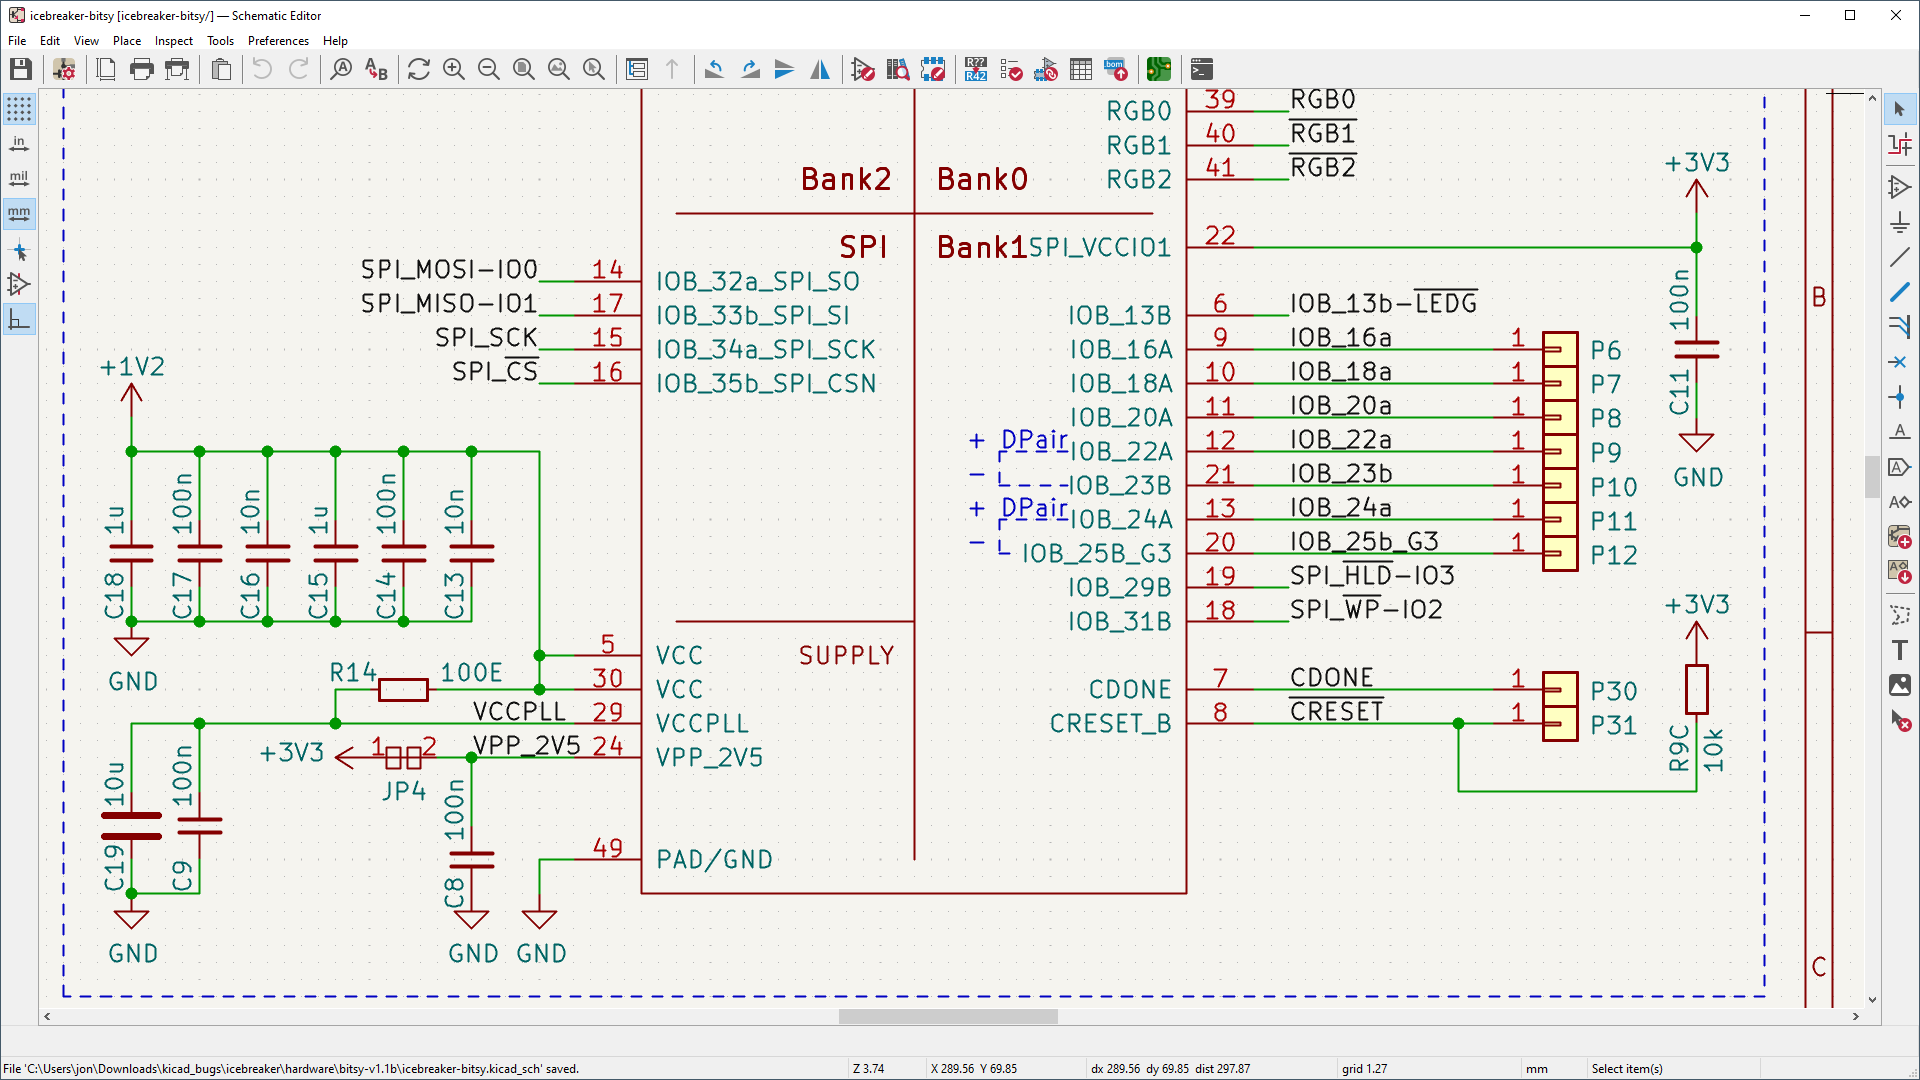 KiCad EDA on free venn diagram, free design, logic synthesis, free electronics, free schedule, free assembly, free sectional, free logic, free pictogram, free cad, free drawing, electronic design automation, digital electronics, schematic editor,